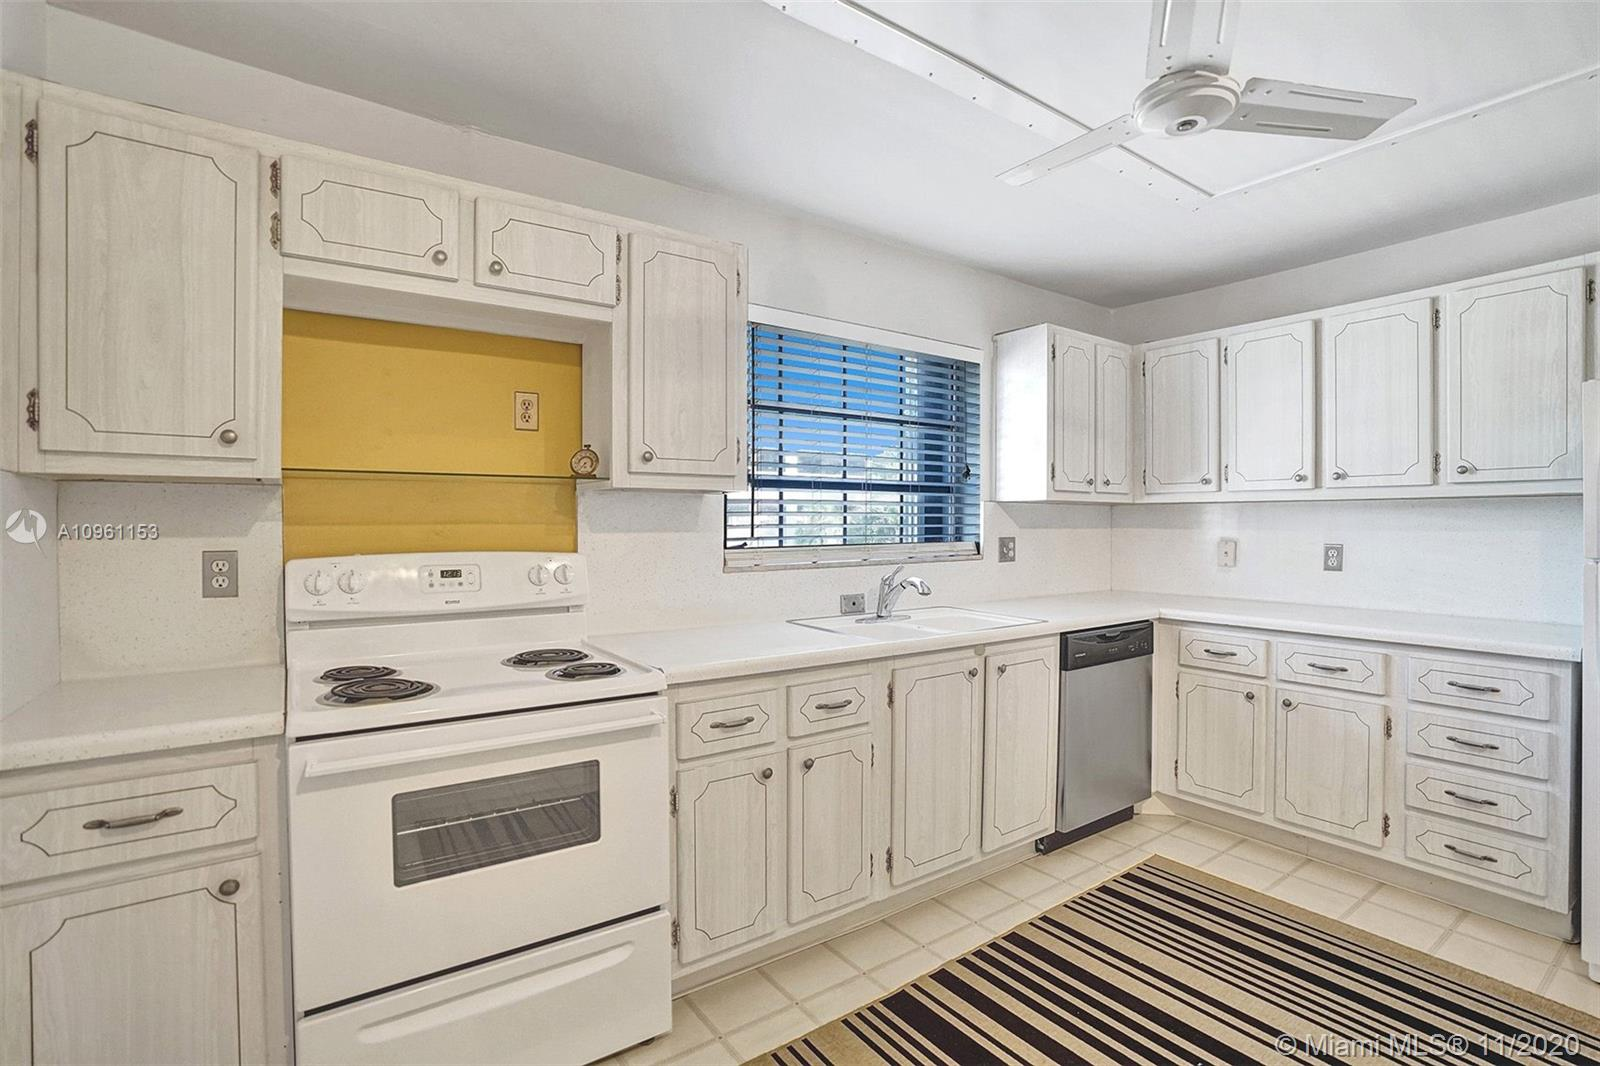 Spacious 2 bedroom 2 bath condo in 55+ community looking for the right buyer to come and make it their home.  Conveniently located behind the Galleria Mall, restaurants and walking distance to the beach.  Bathrooms have updated vanities.  Community has laundry facility and pool.